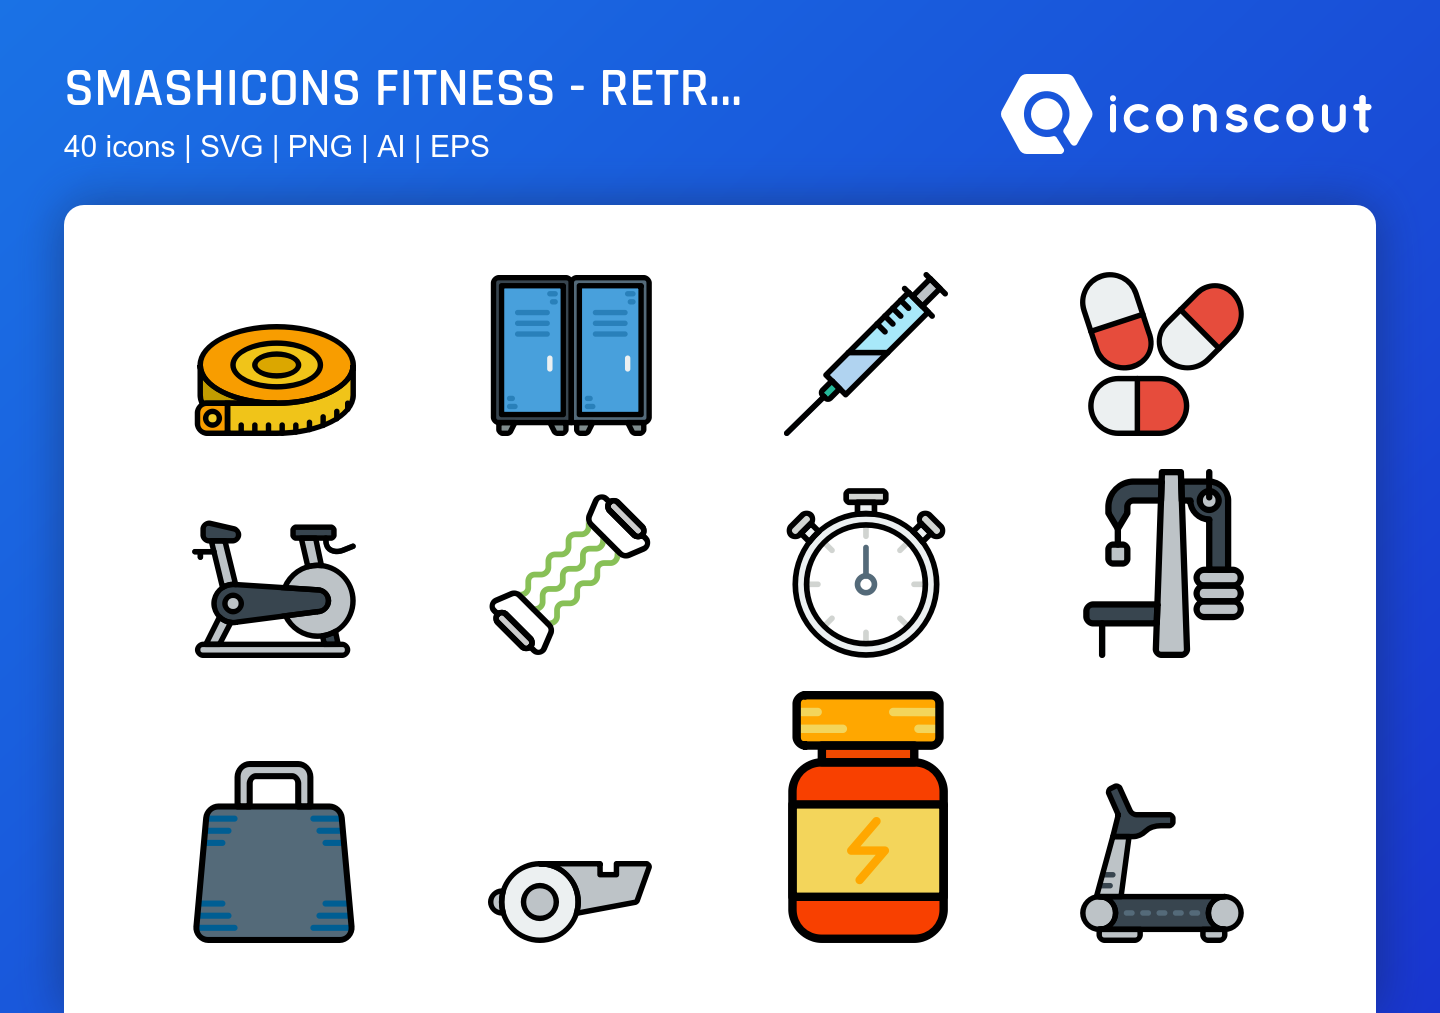 Smashicons Fitness - Retro icons by Smashicons .